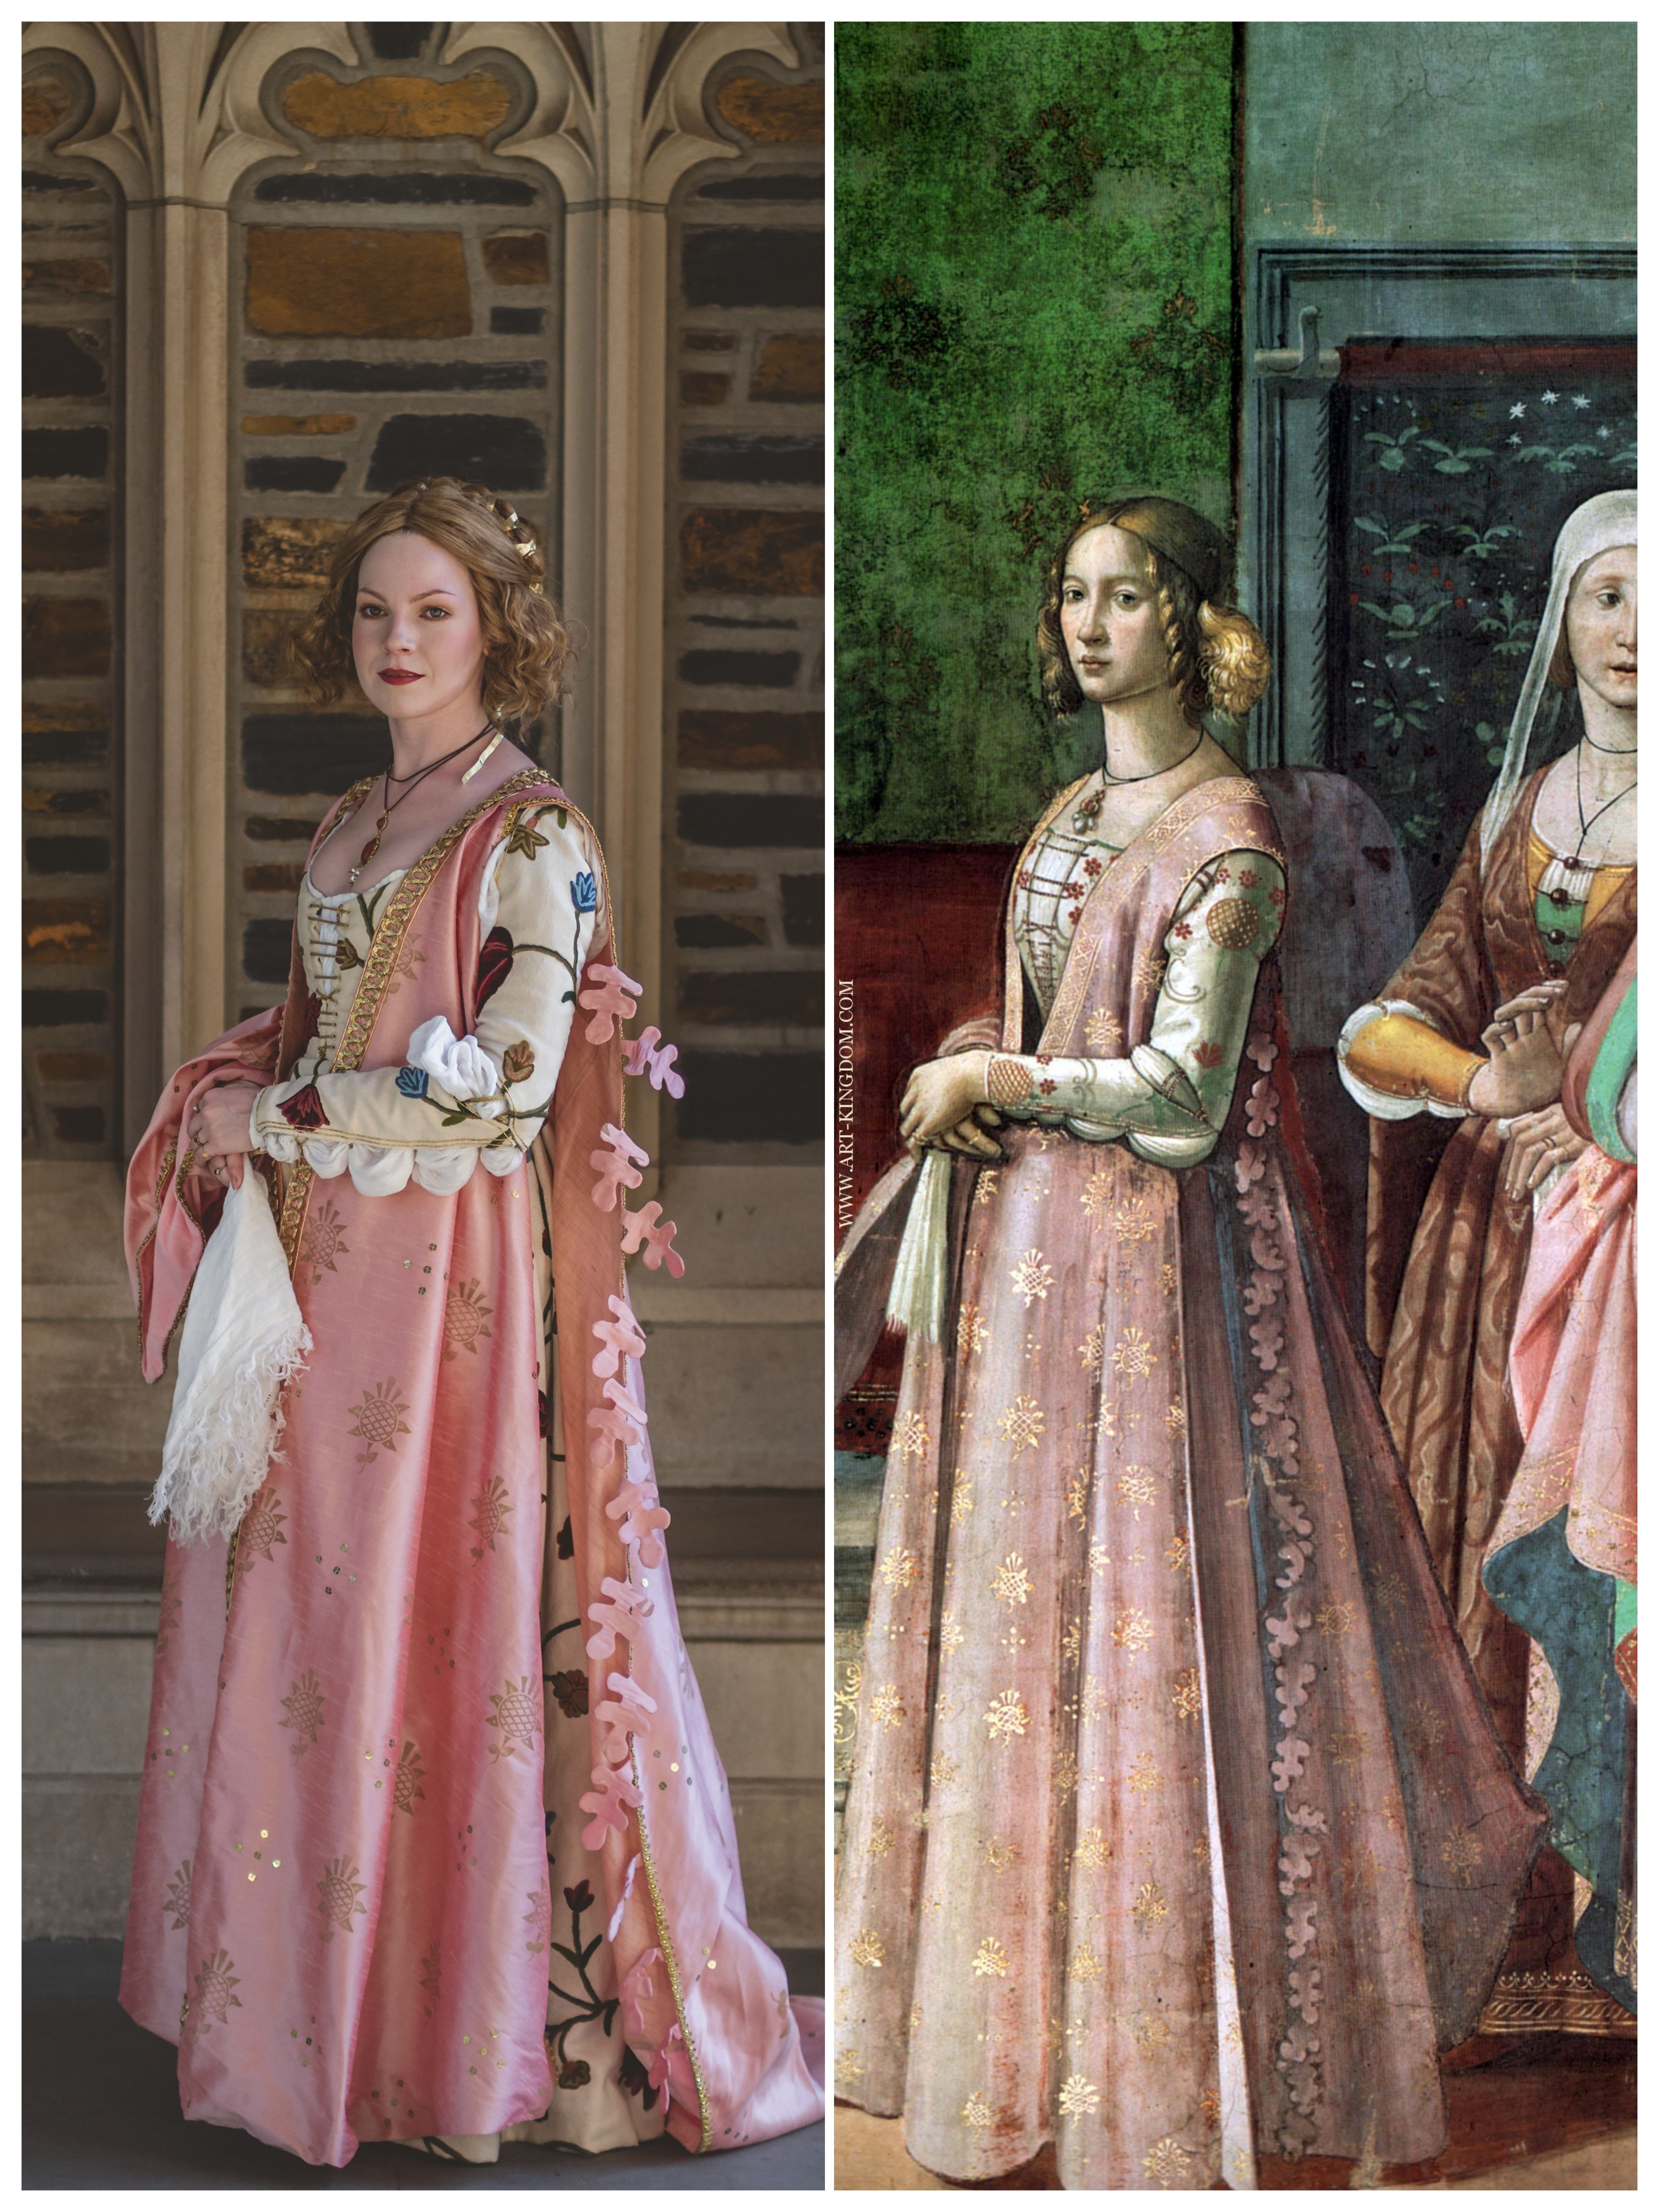 I Recreated A 15th Century Gown From A Fresco In Italy Sewing Crafts Handmade Quilting Italian Renaissance Dress 15th Century Fashion Renaissance Fashion